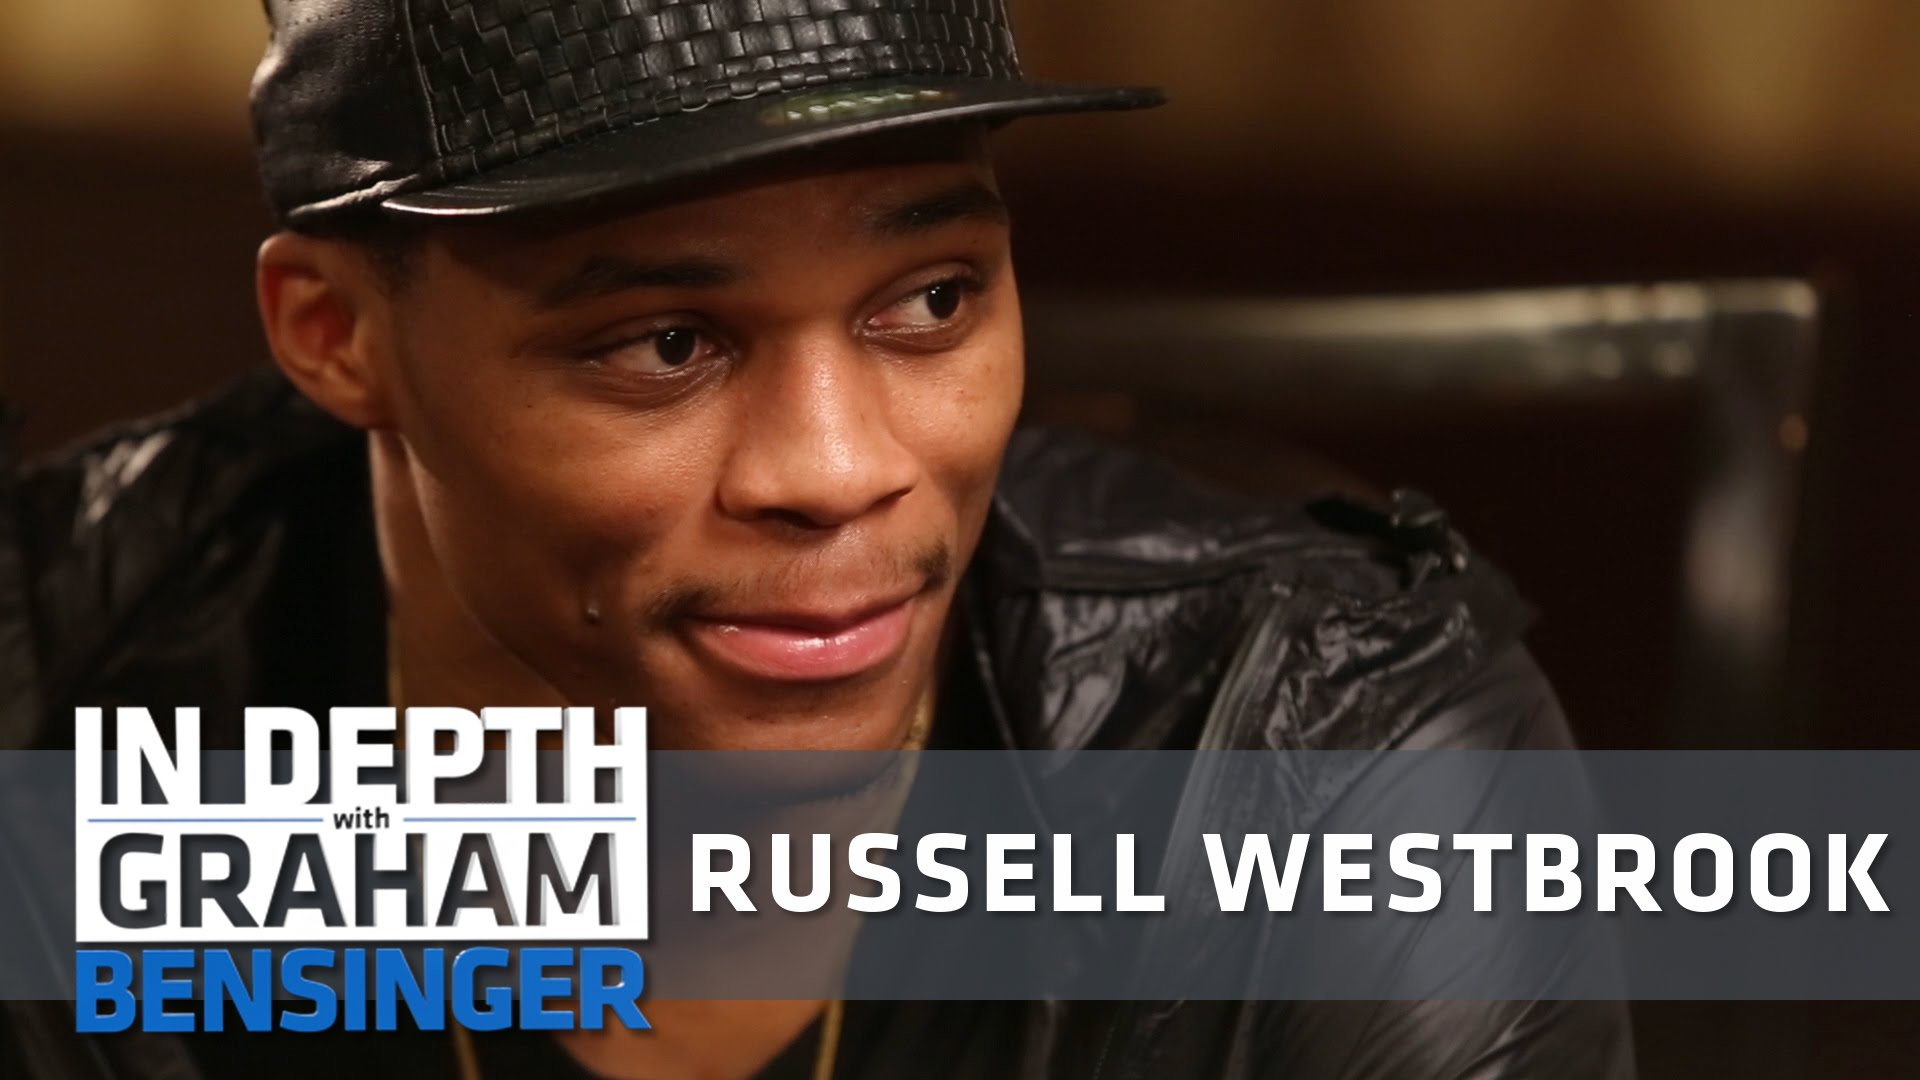 Russell Westbrook speaks on losing his best friend